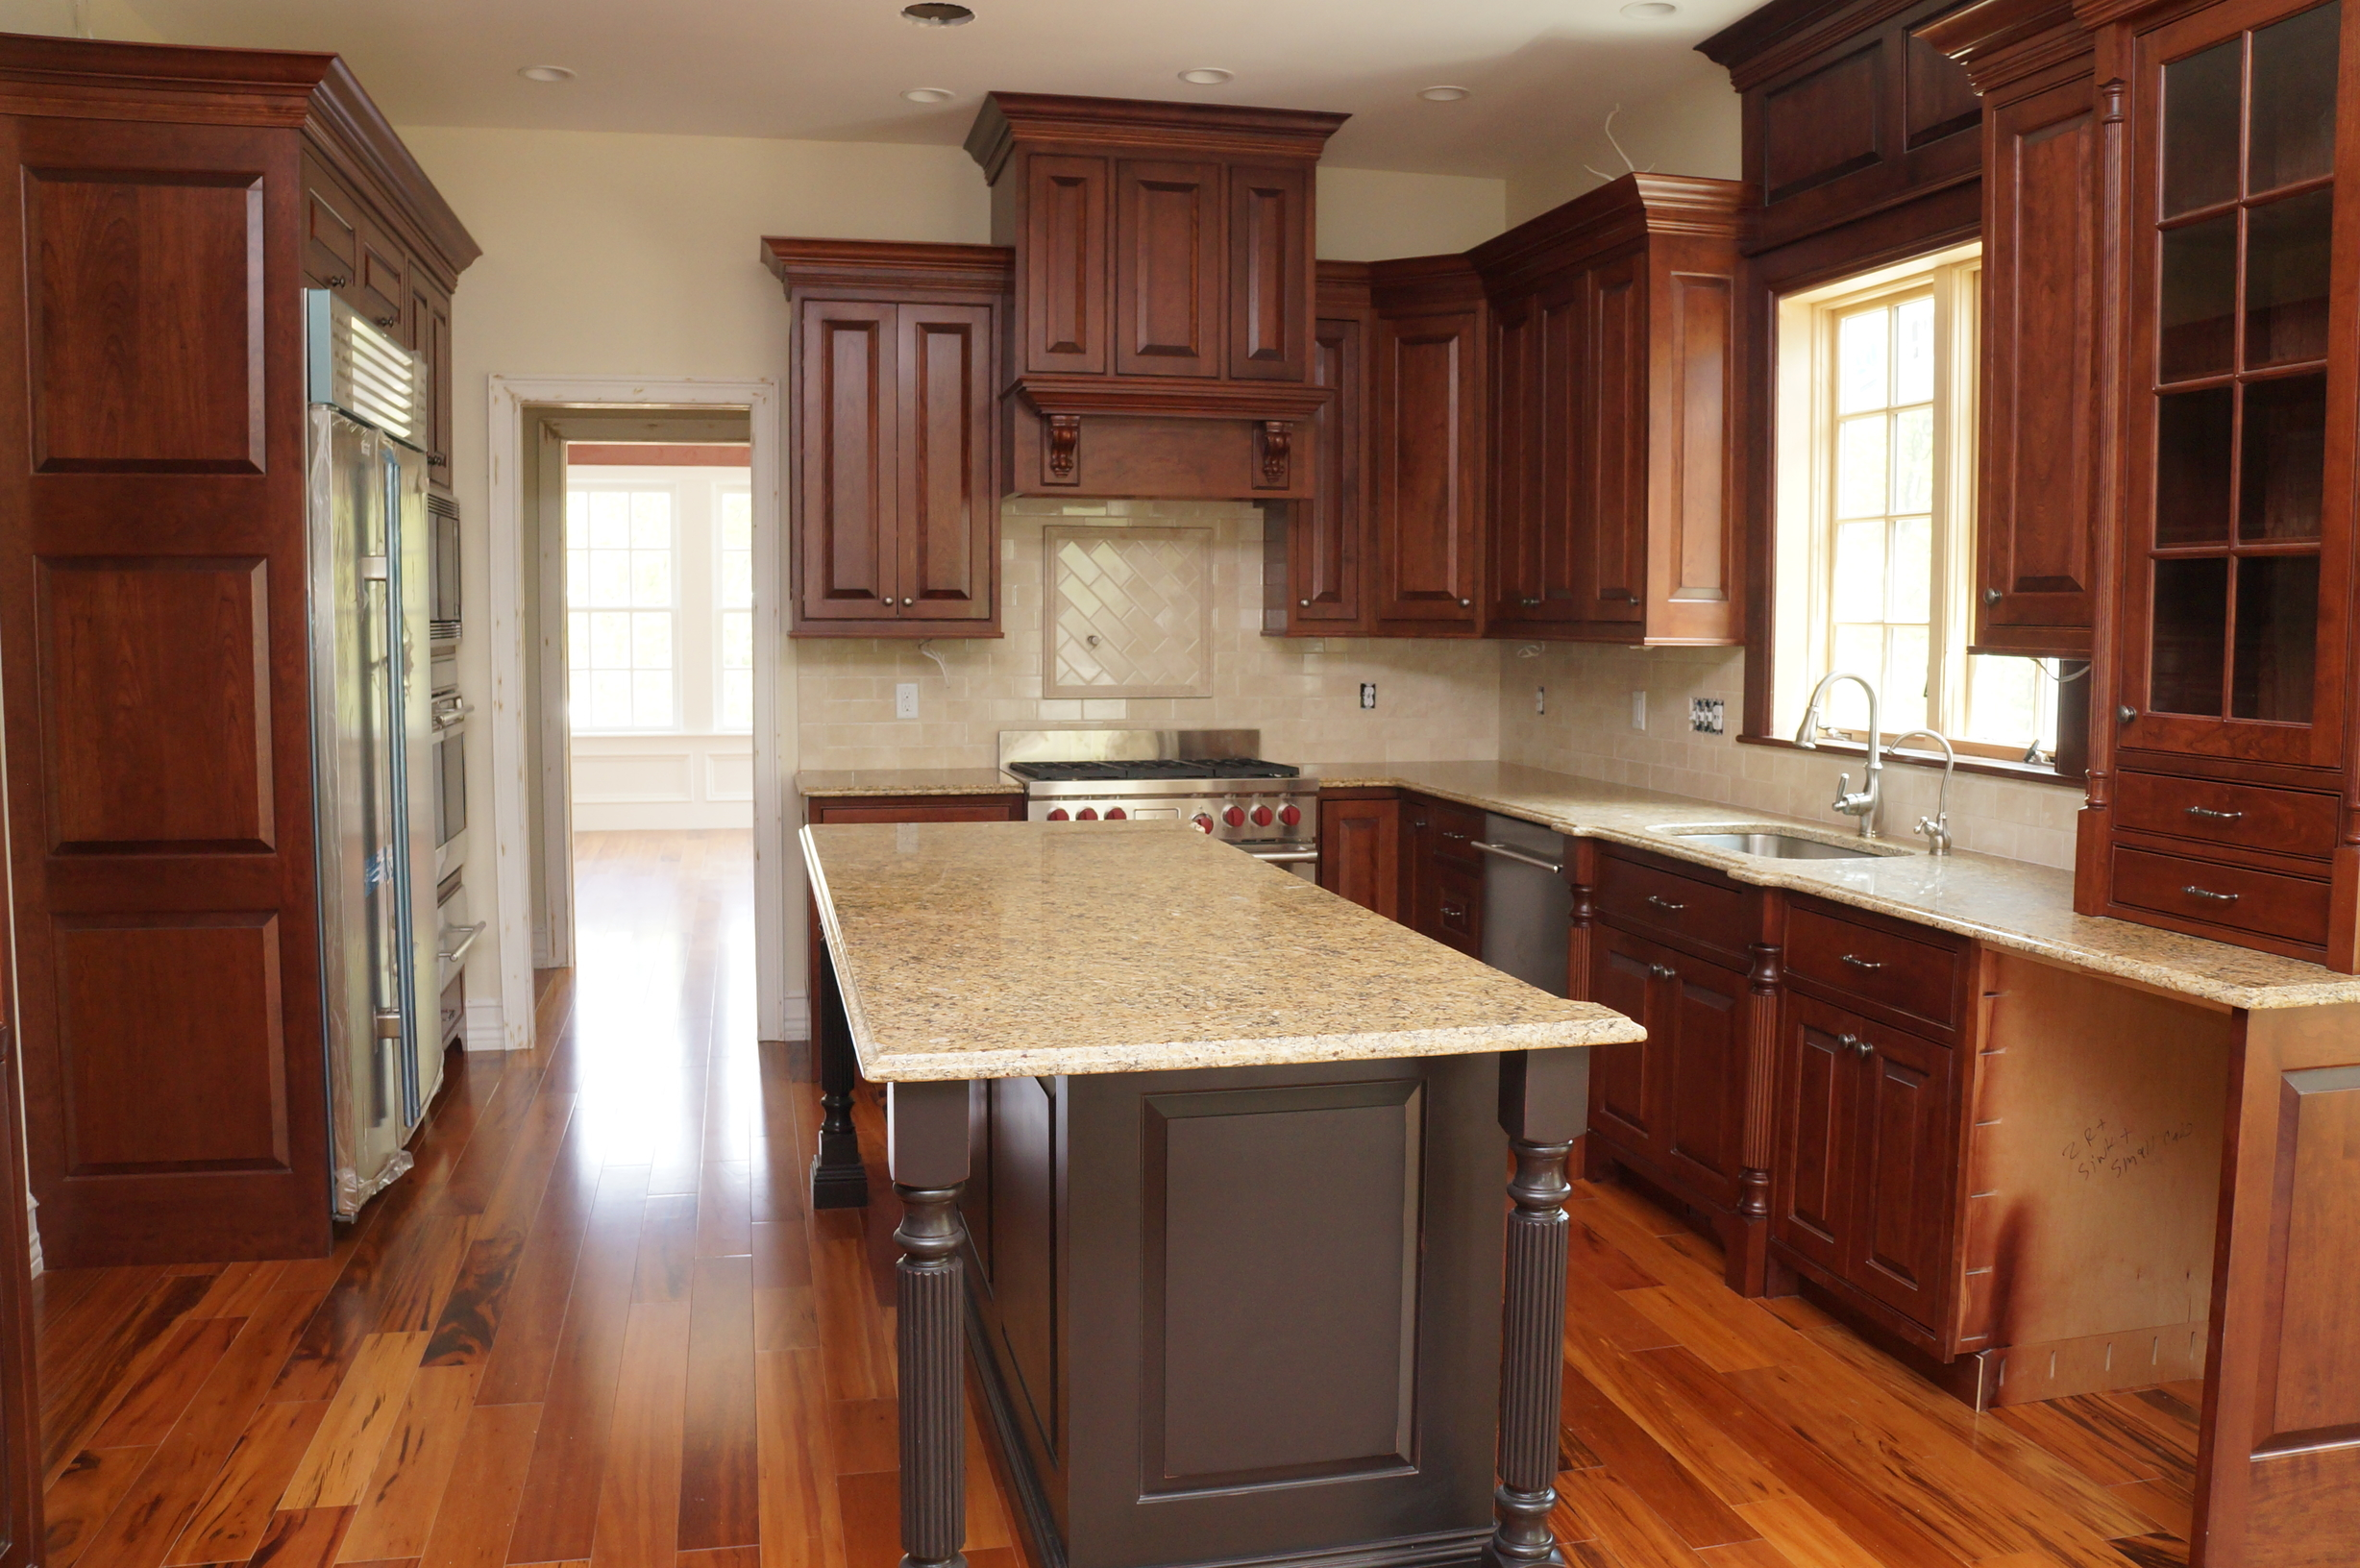 Build a Country Kitchen Weston MA